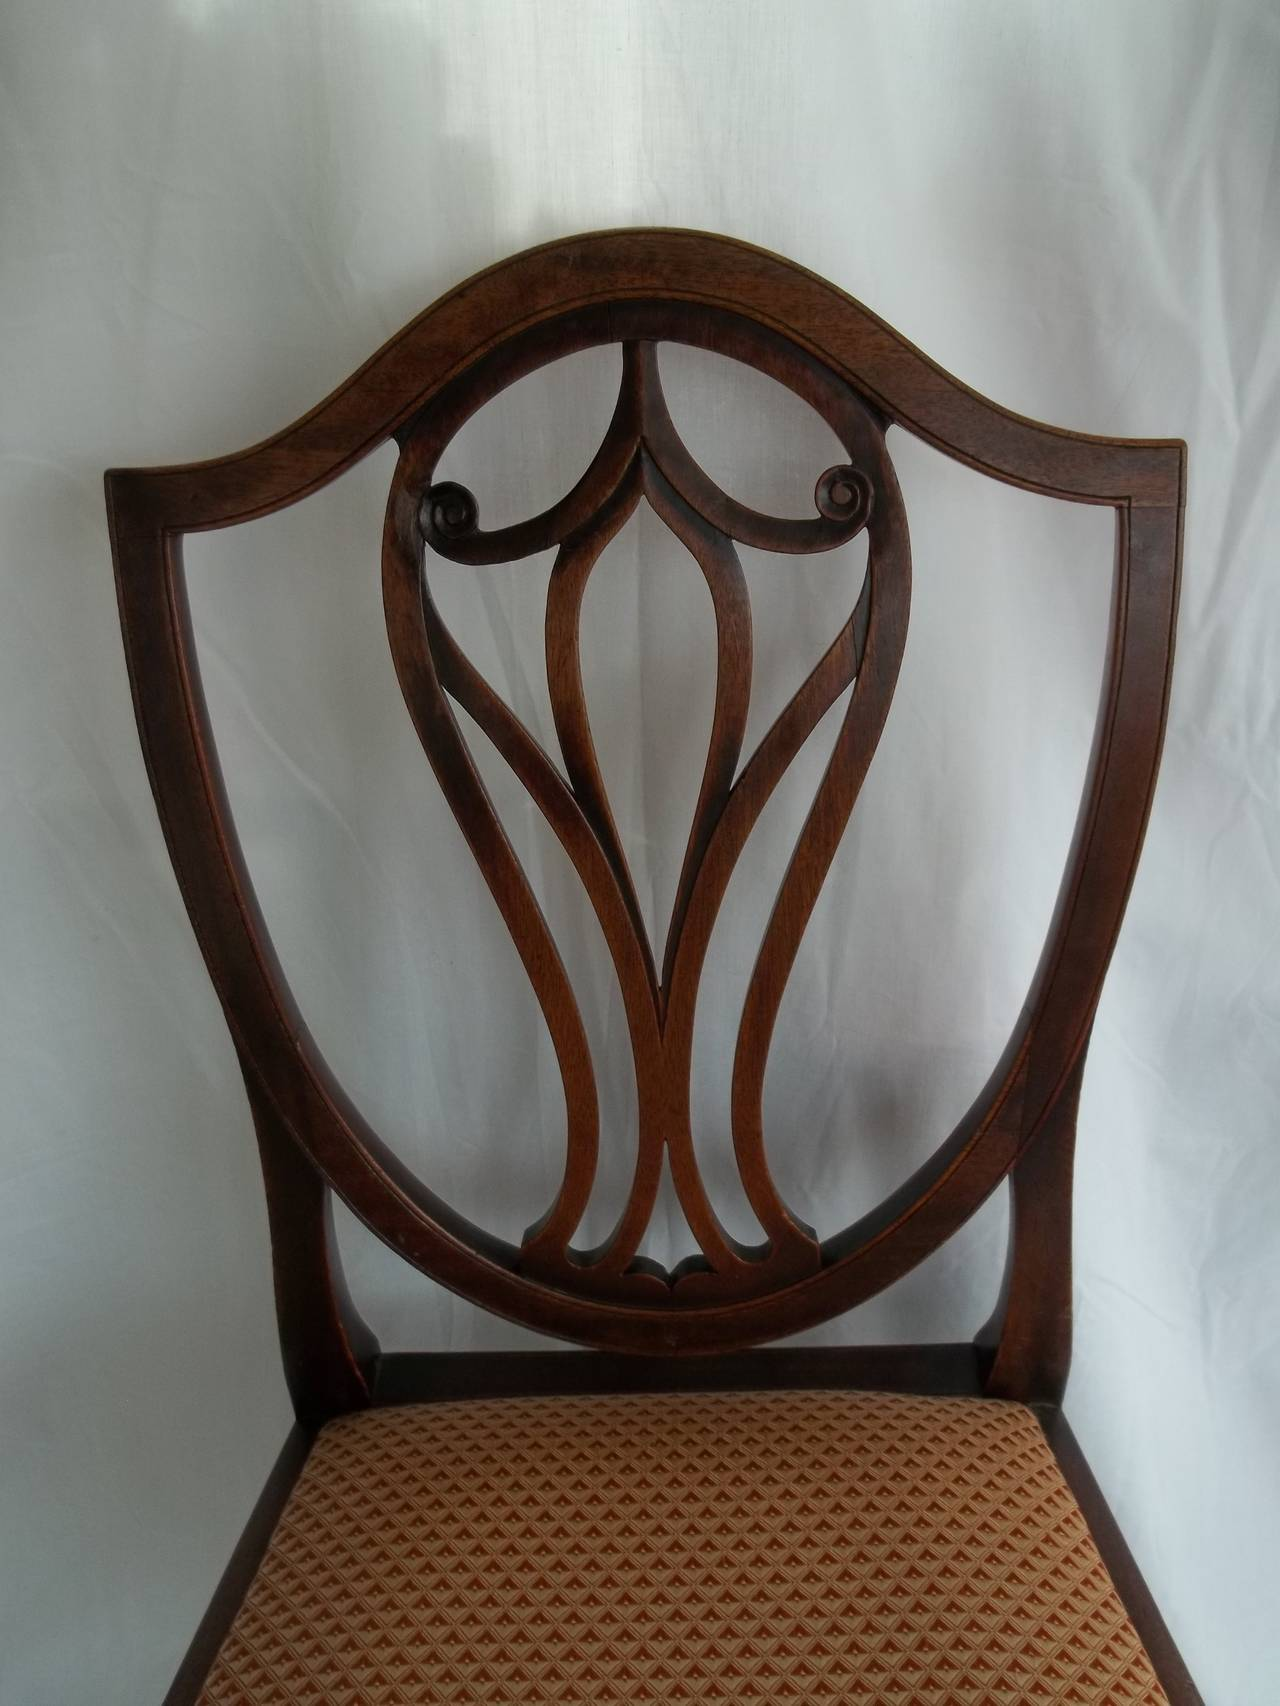 This is a very elegant, fine quality Side Chair from the late 18th Century, circa 1785.   Shield Back chairs of this date are popularly called Hepplewhite because very many chair makers followed the designs of George Hepplewhite, as illustrated in